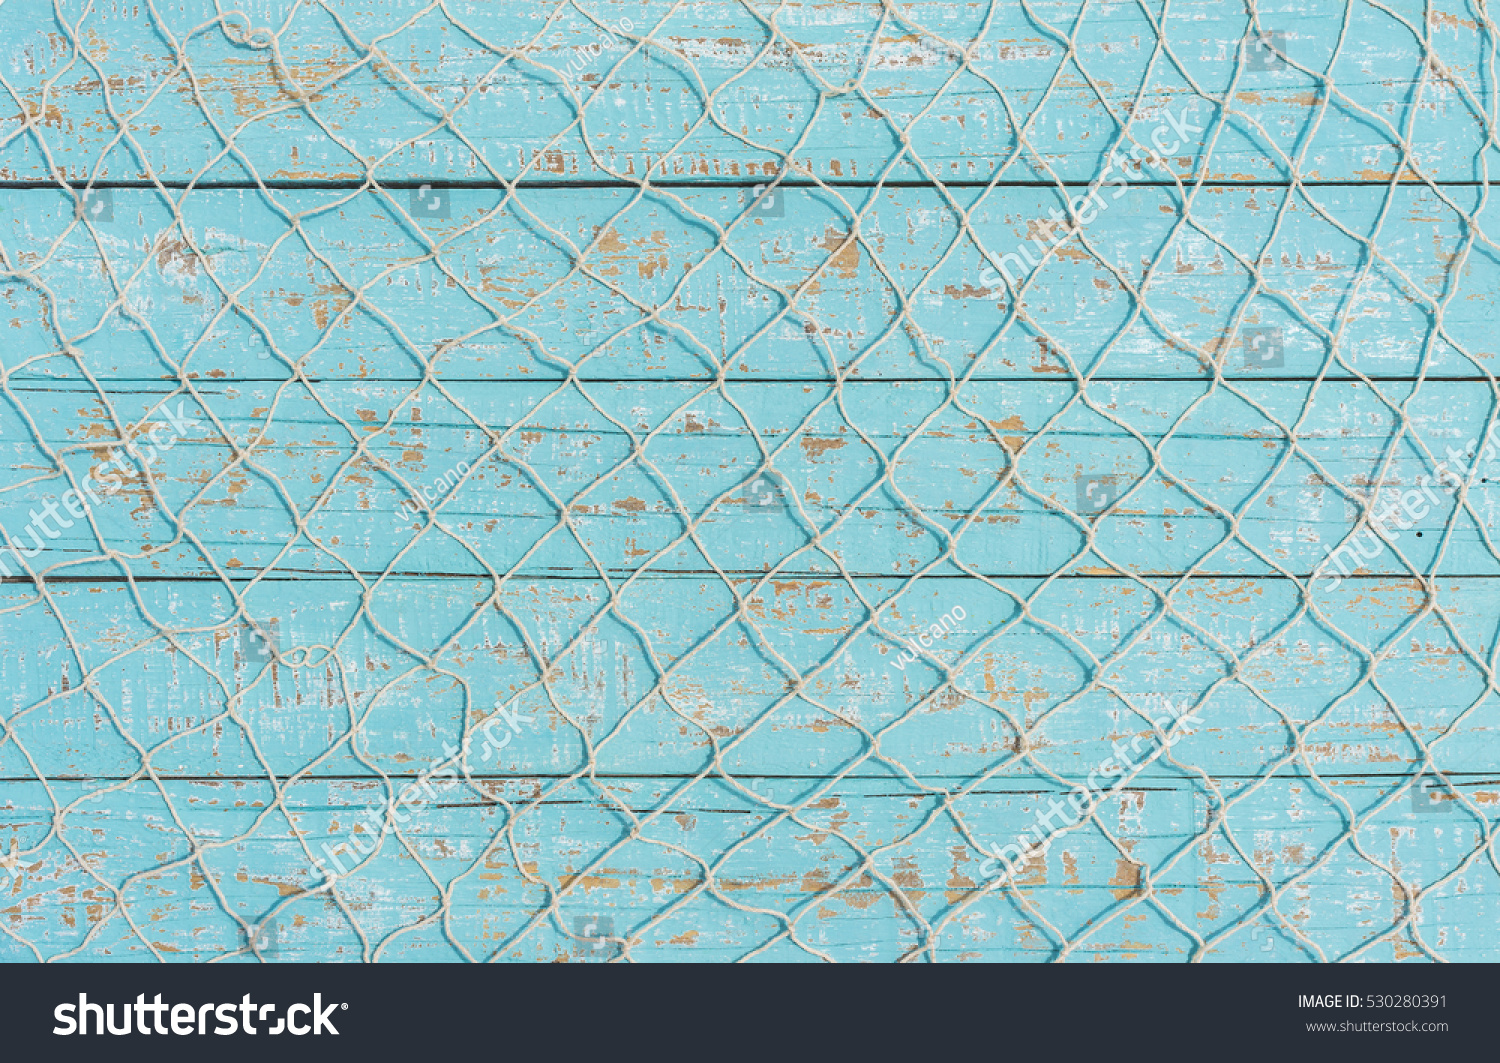 Maritime nautical fishing net texture on turquoise blue wood background, copy space.  #530280391